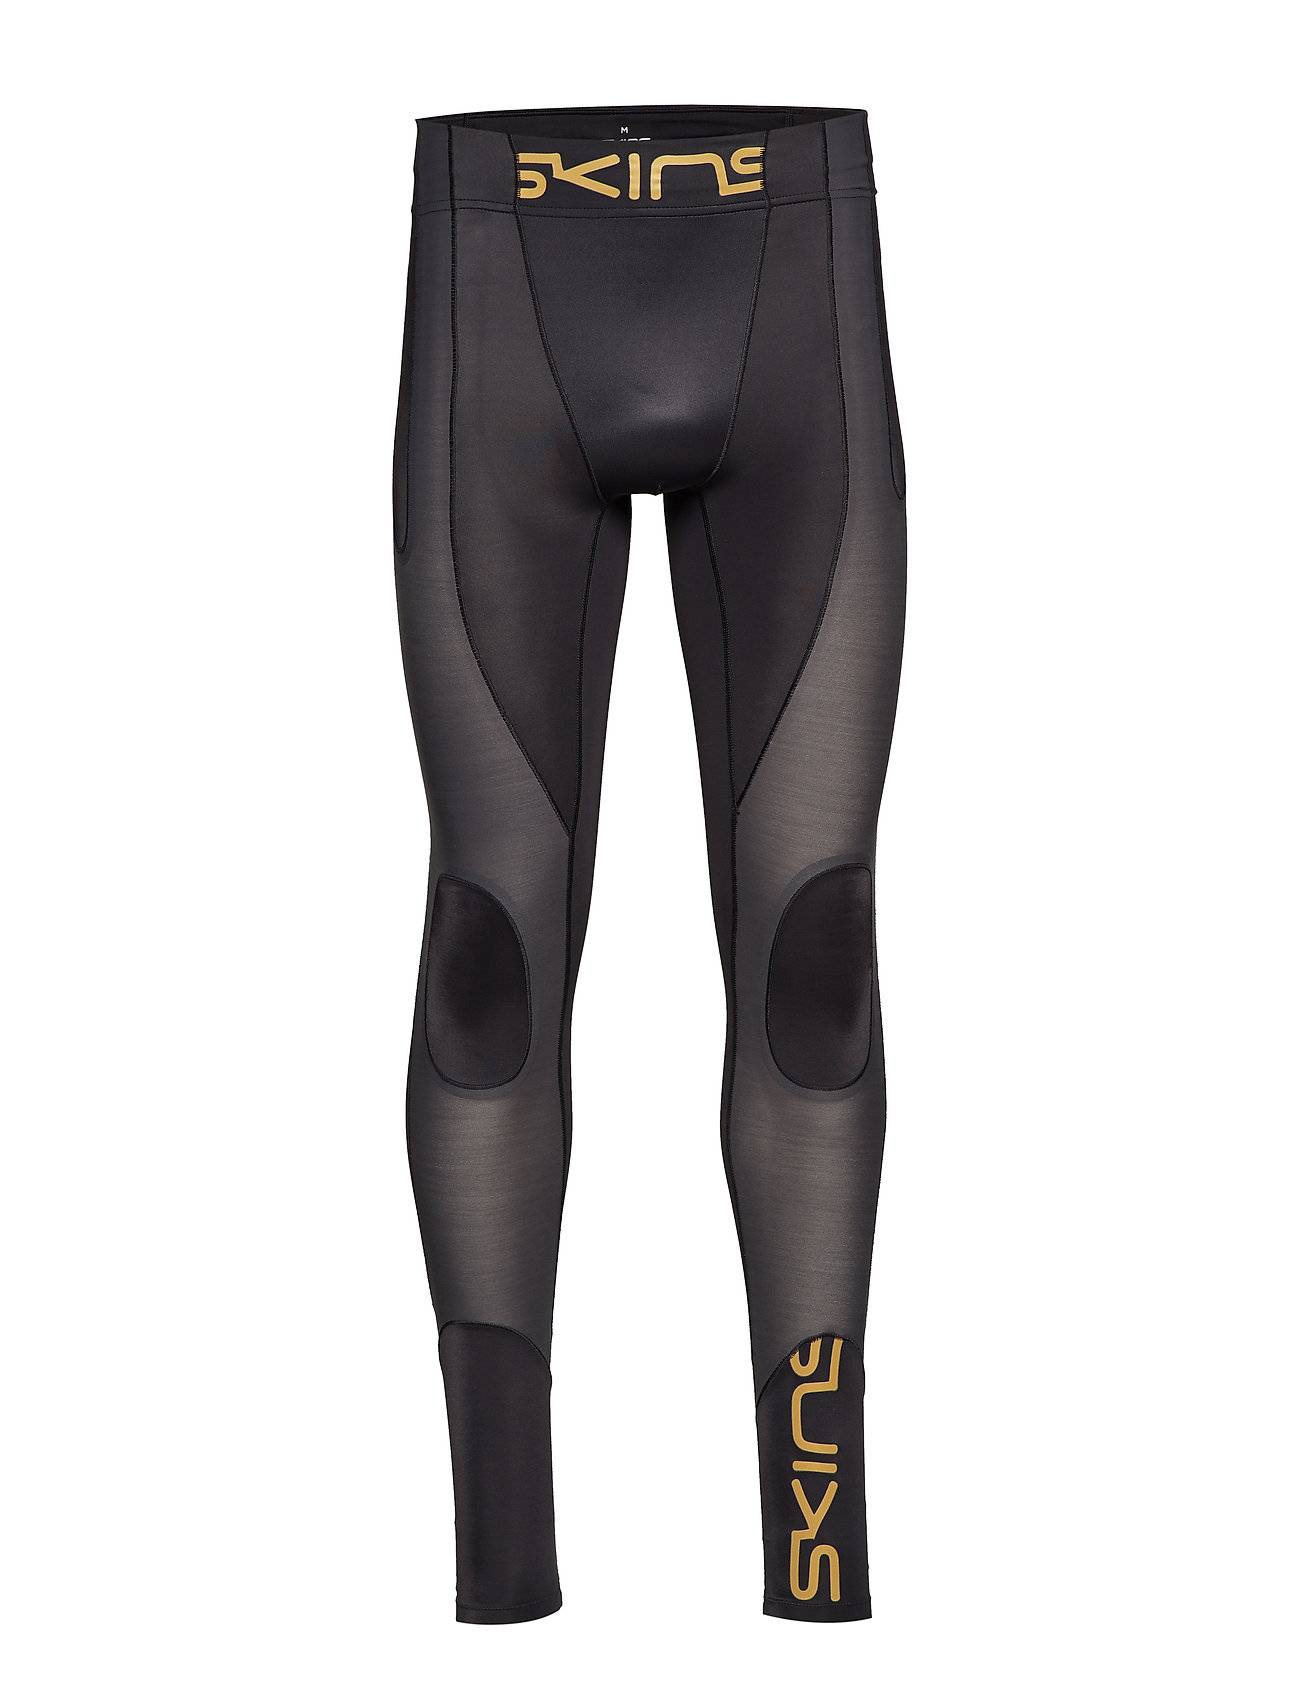 Image of Skins Dnamic Ultimate K-Proprium Mens Long Tights Running/training Tights Musta Skins